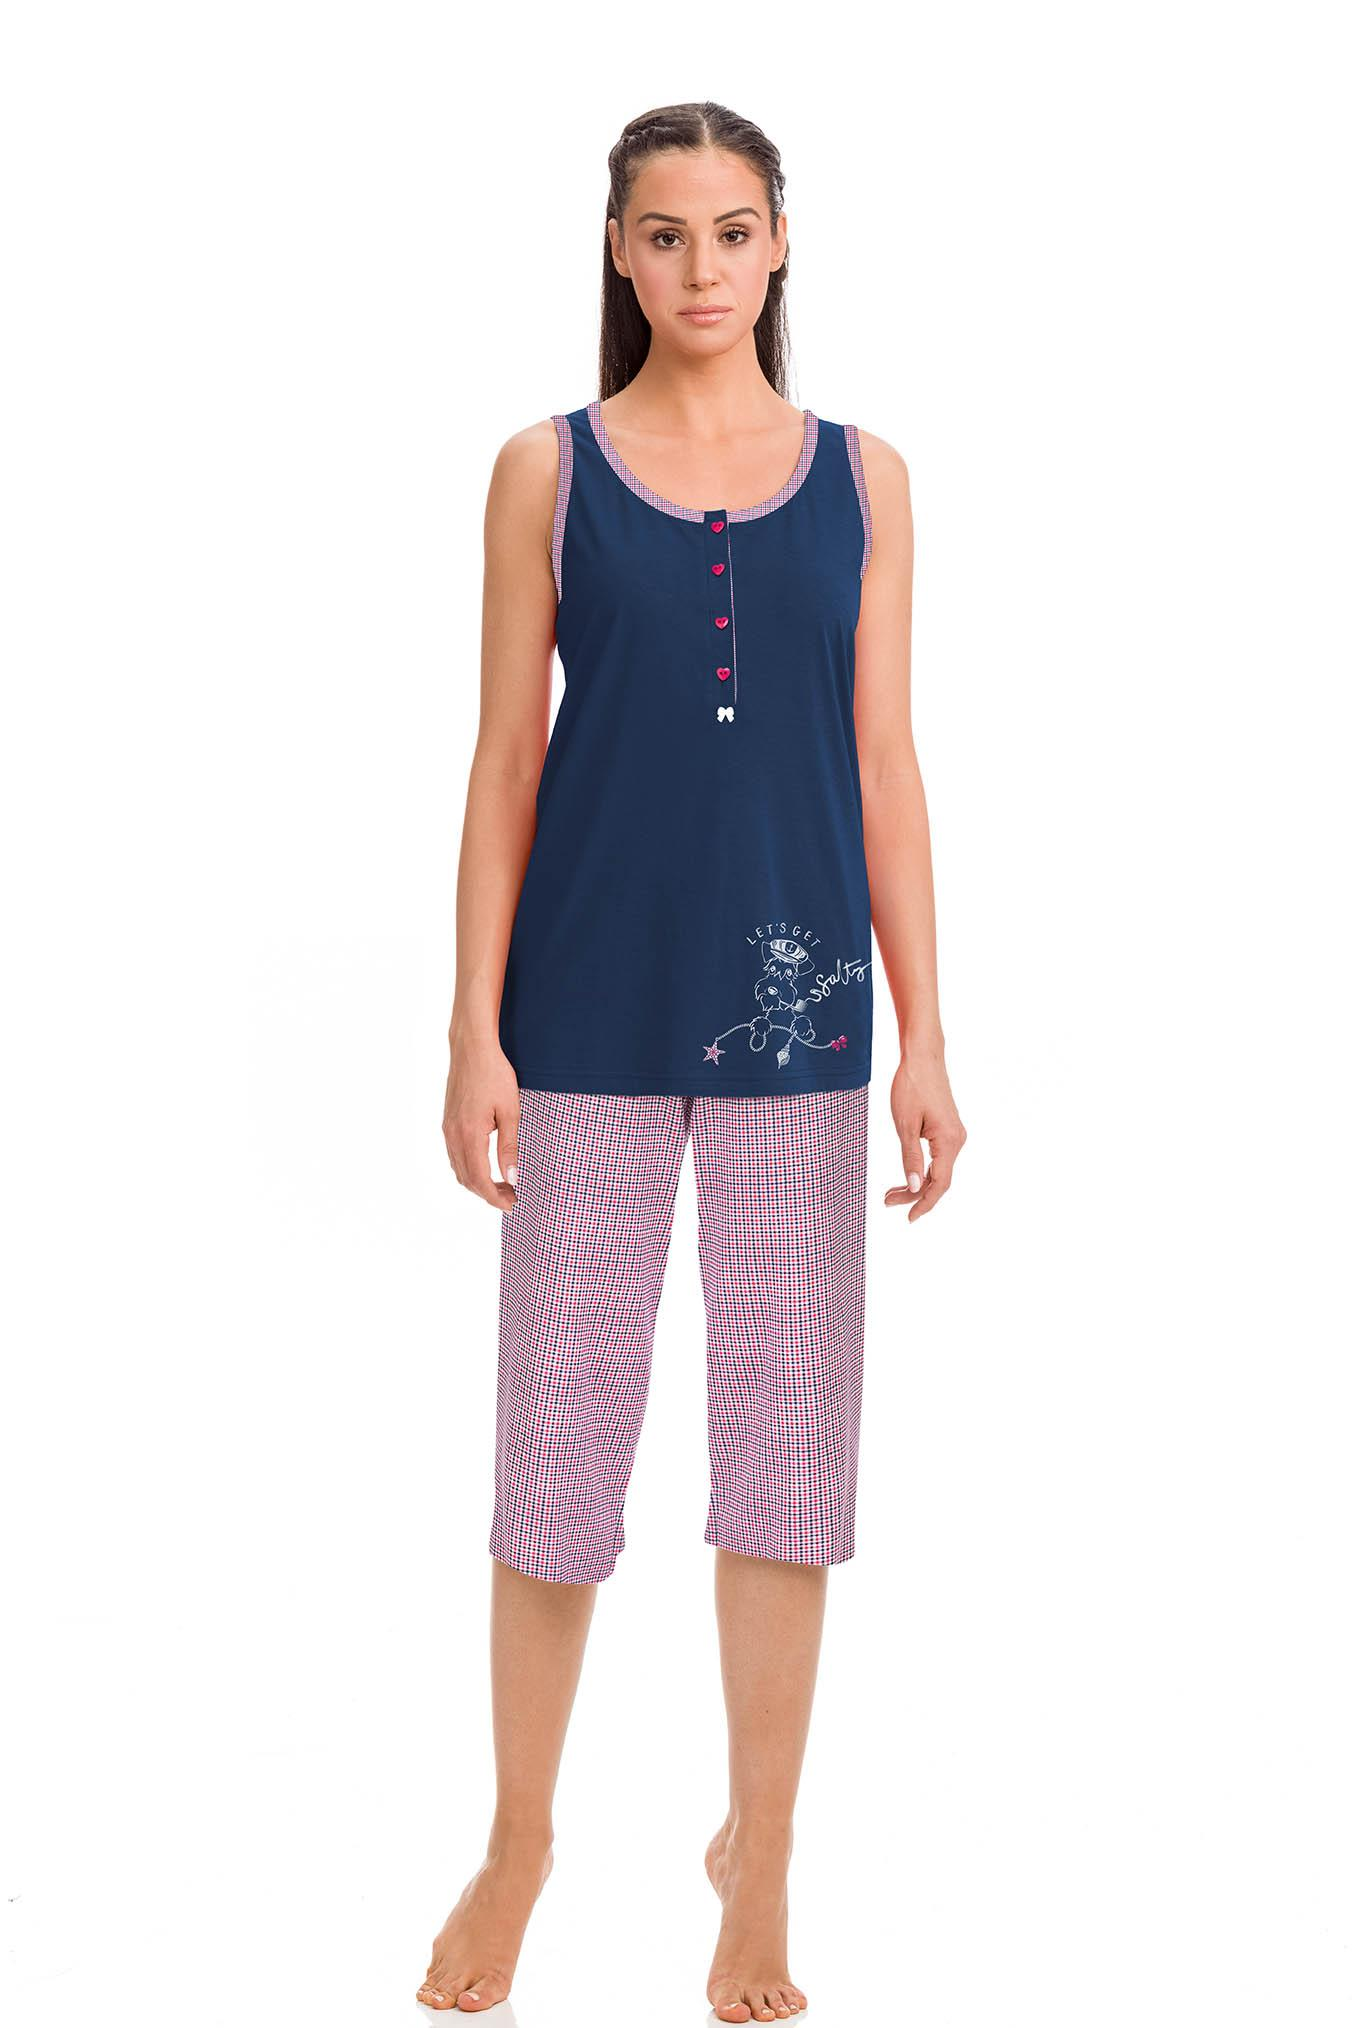 Women's Sleeveless Pyjamas with Capri Pants Women's pyjamas with button placket on the front for easy nursing and capri pants. Lightweight feel and soft fabric with composition 100% S. Jersey Cotton.